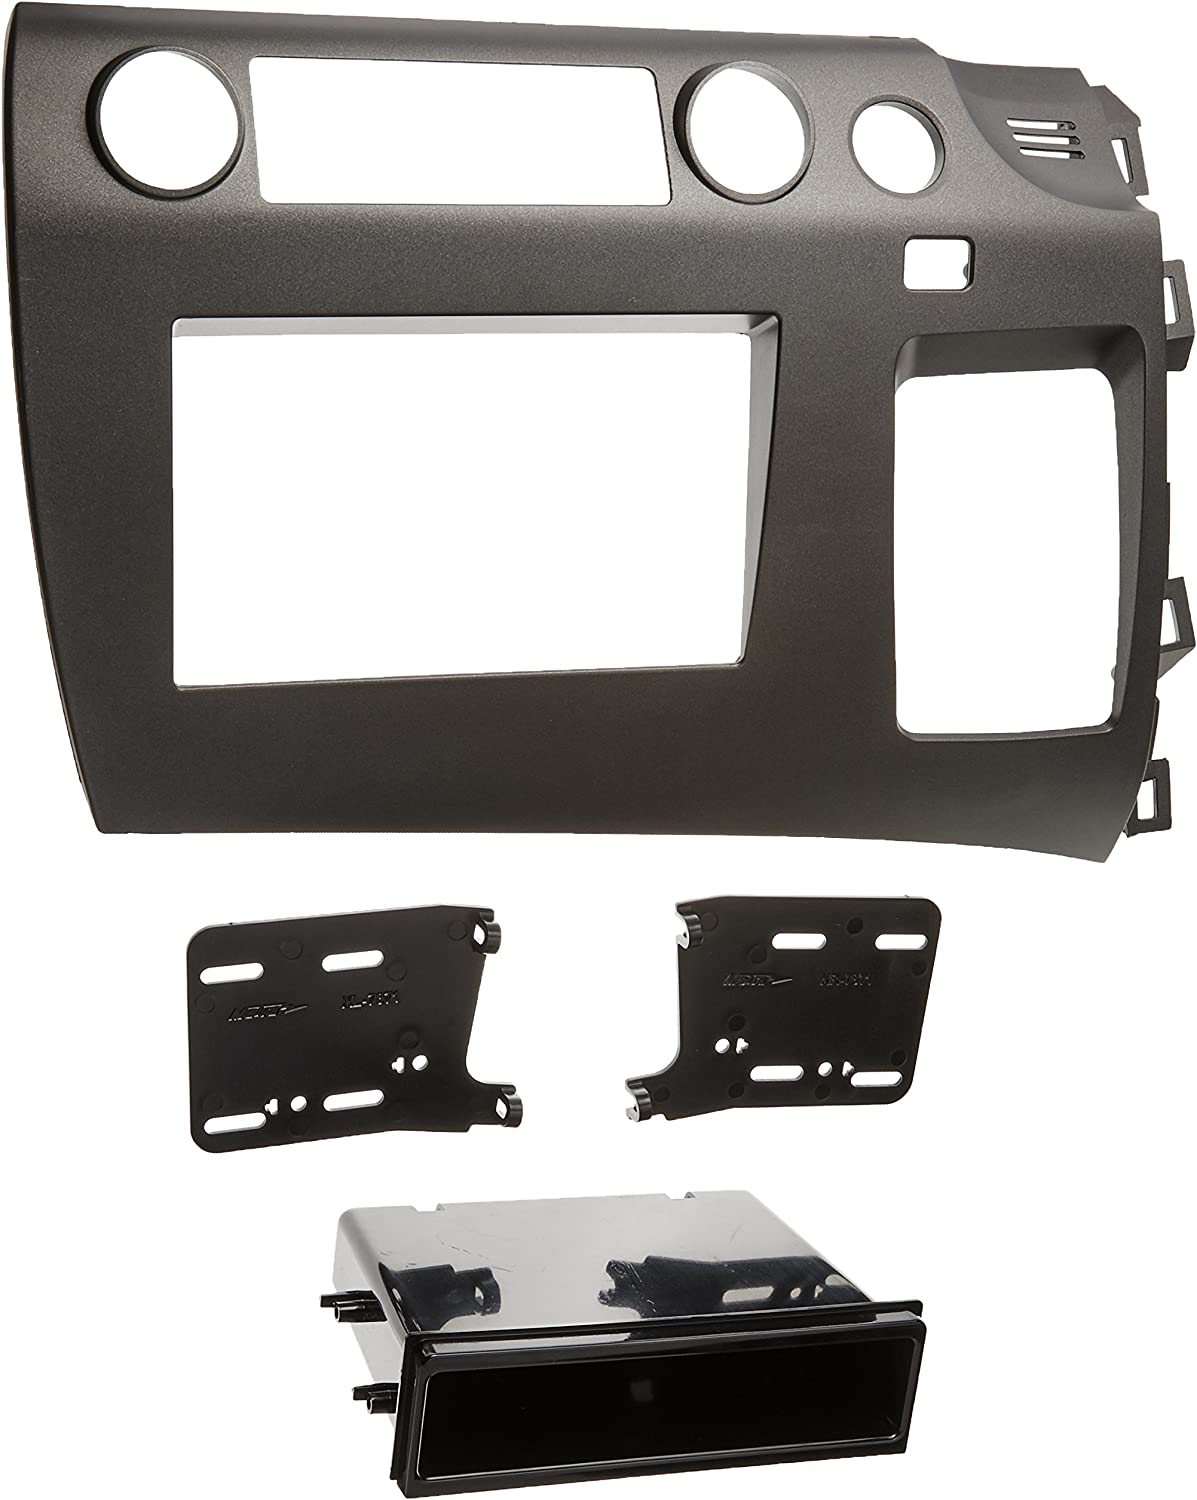 Metra 99-7871 Single DIN//Double DIN Installation Kit for 2006-2009 Honda Civic Vehicles Charcoal Grey